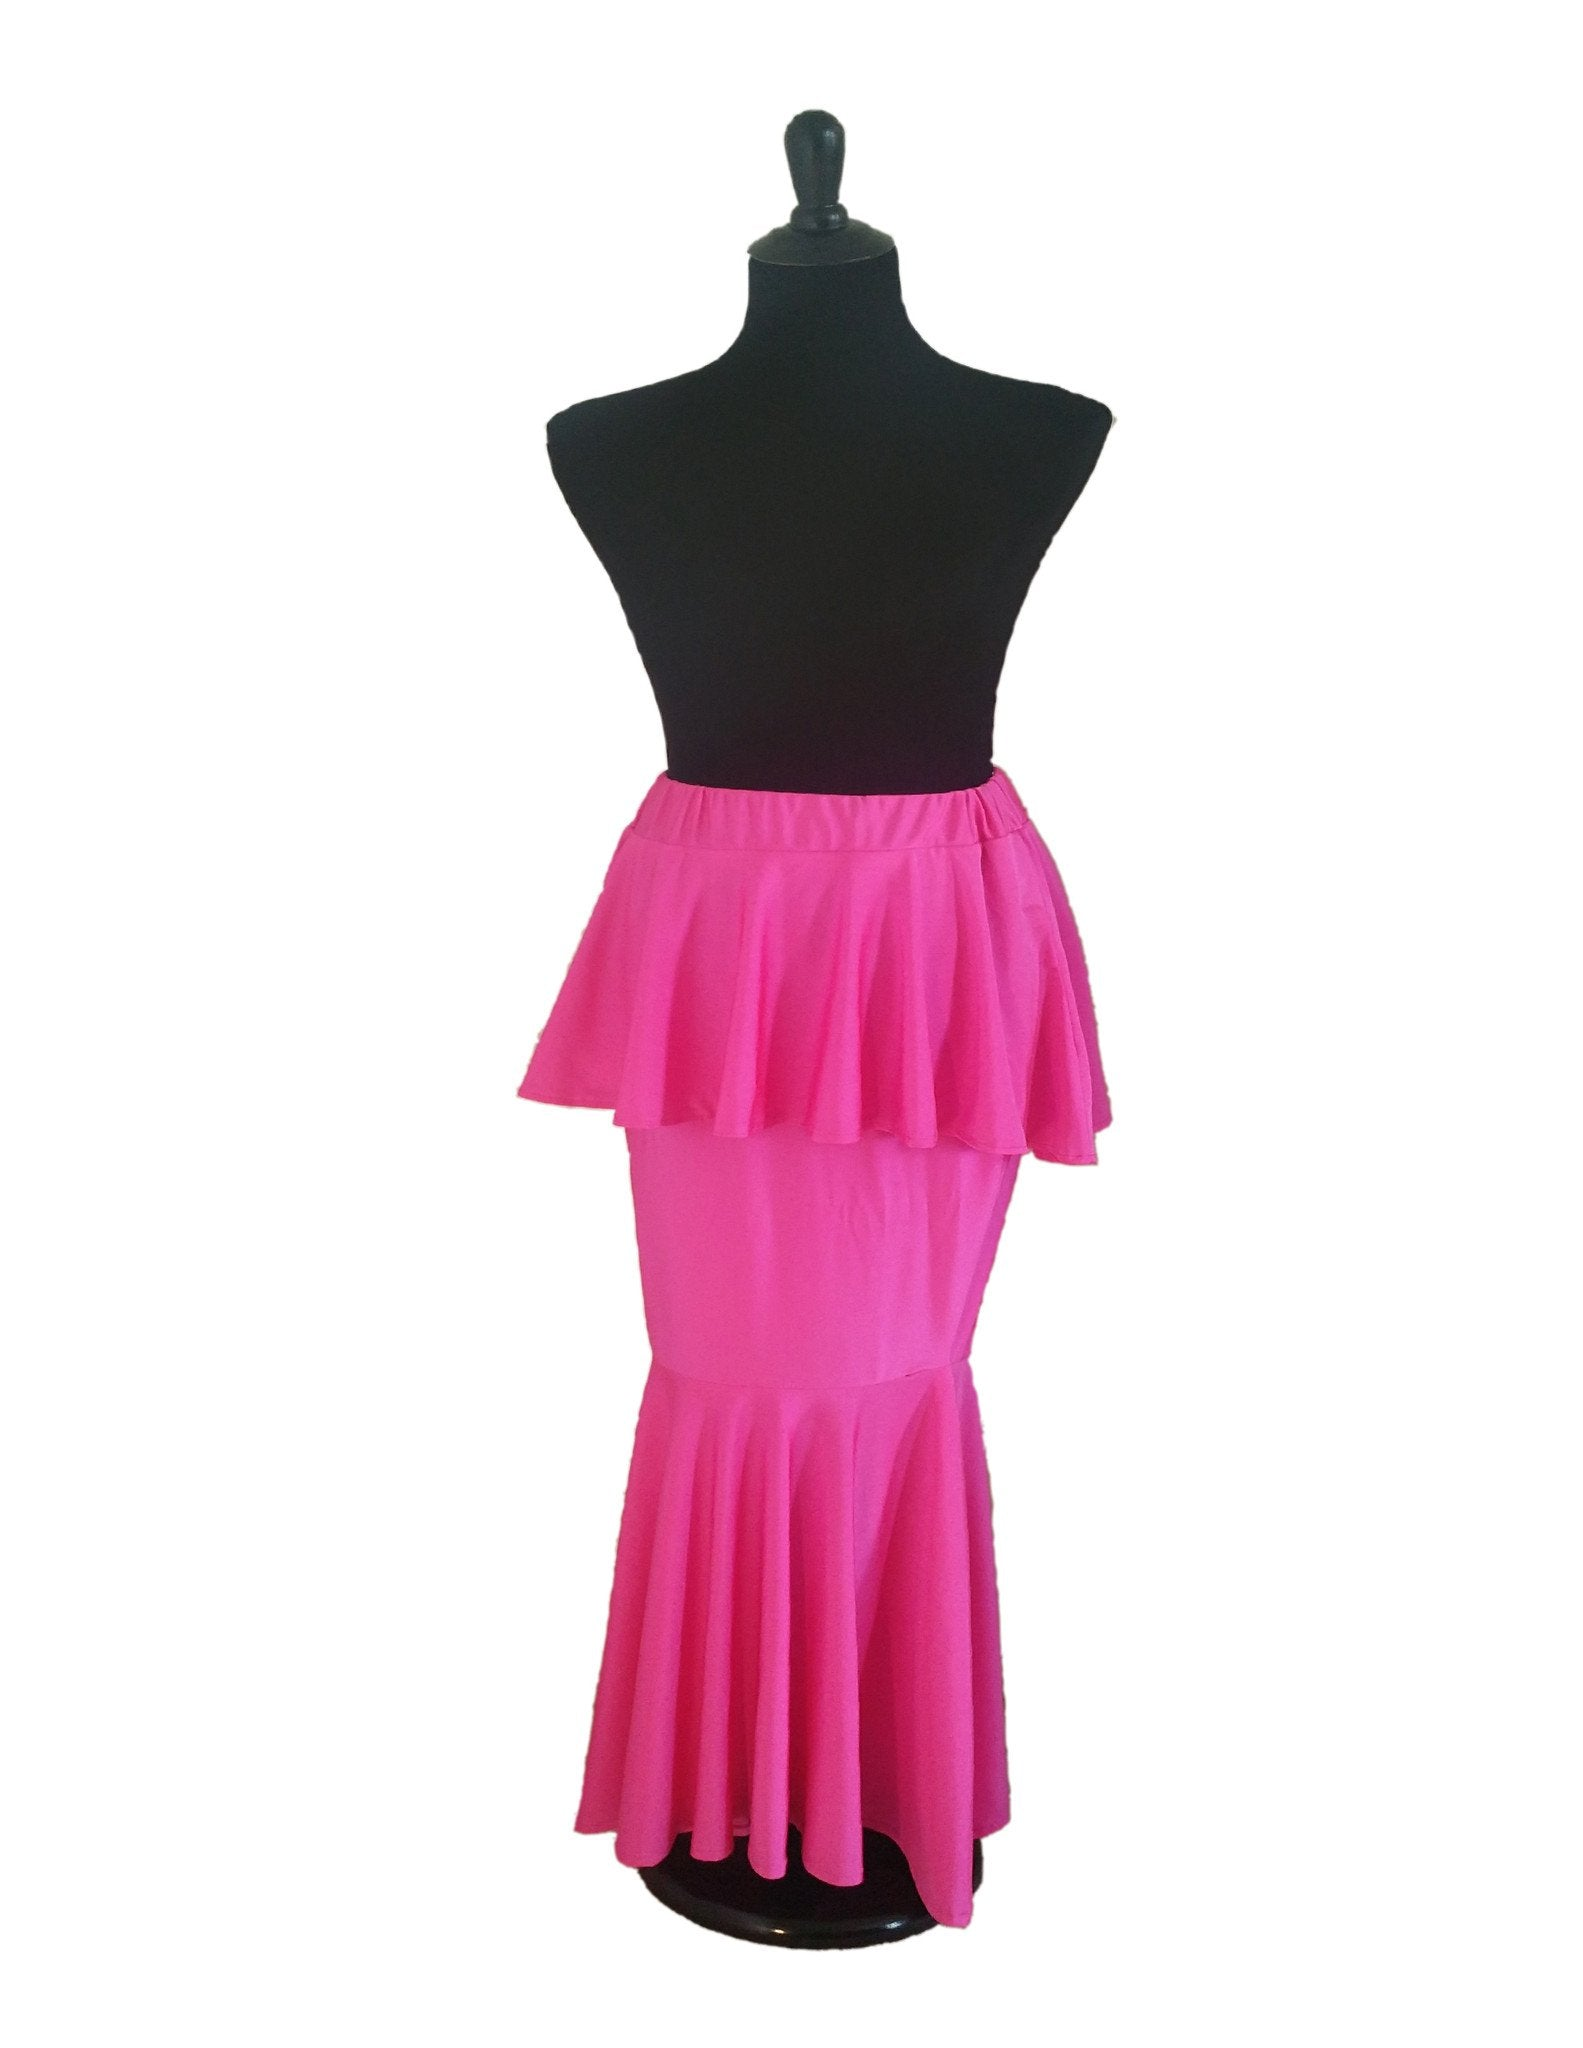 DS Collection Pink Peplum Skirt